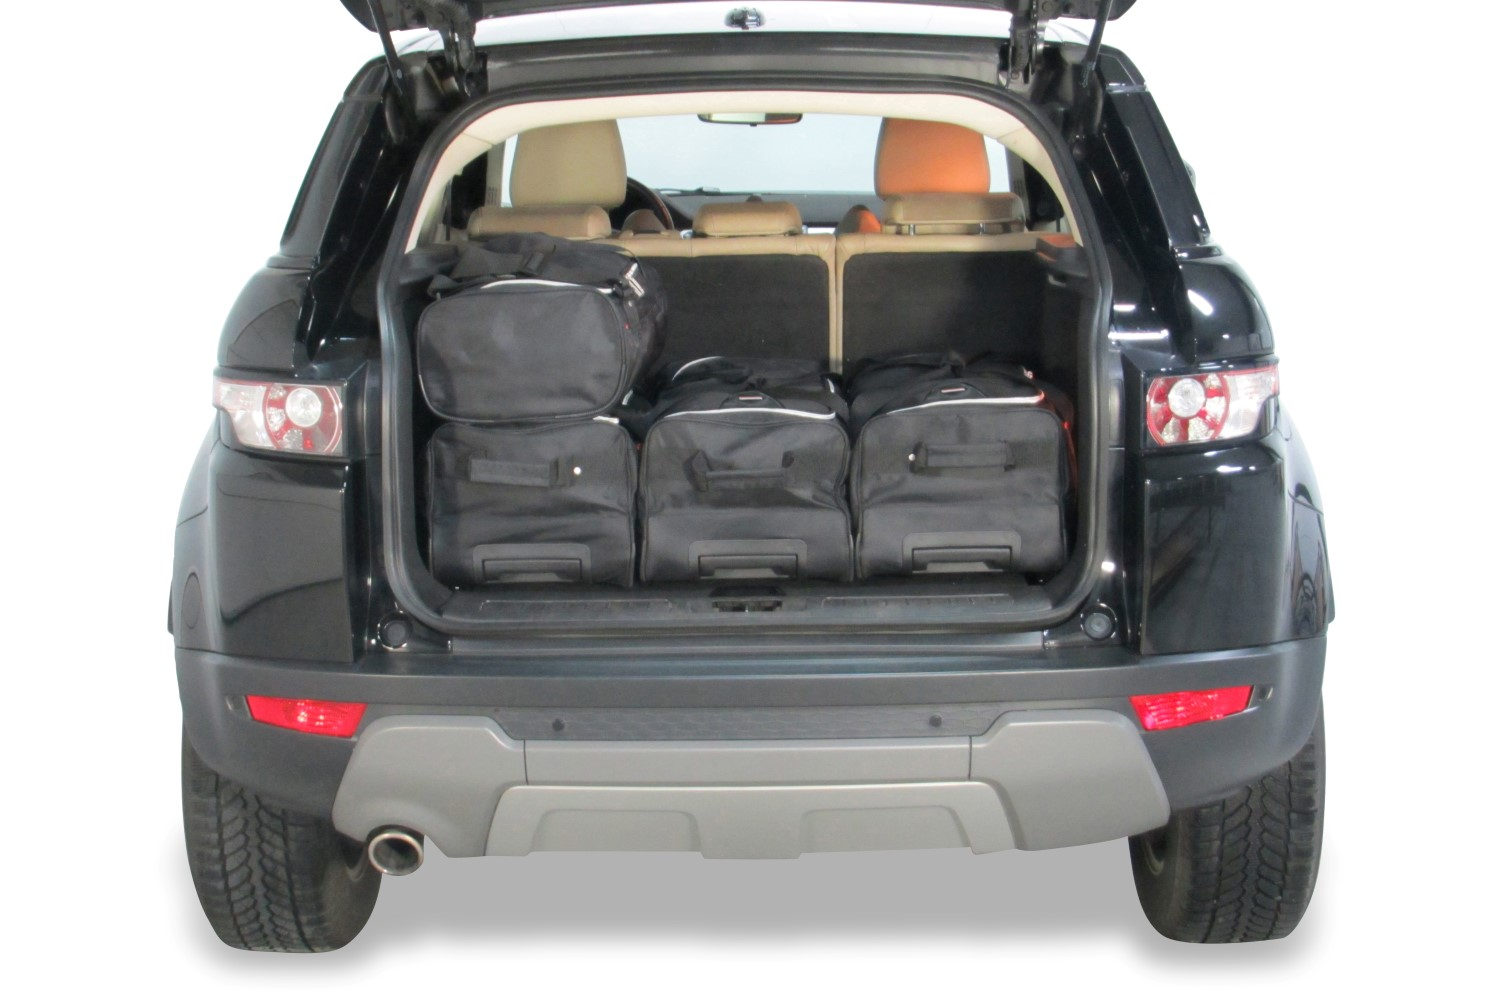 range rover evoque 2011 heden range rover evoque l538 2011 heden car bags reistassenset. Black Bedroom Furniture Sets. Home Design Ideas